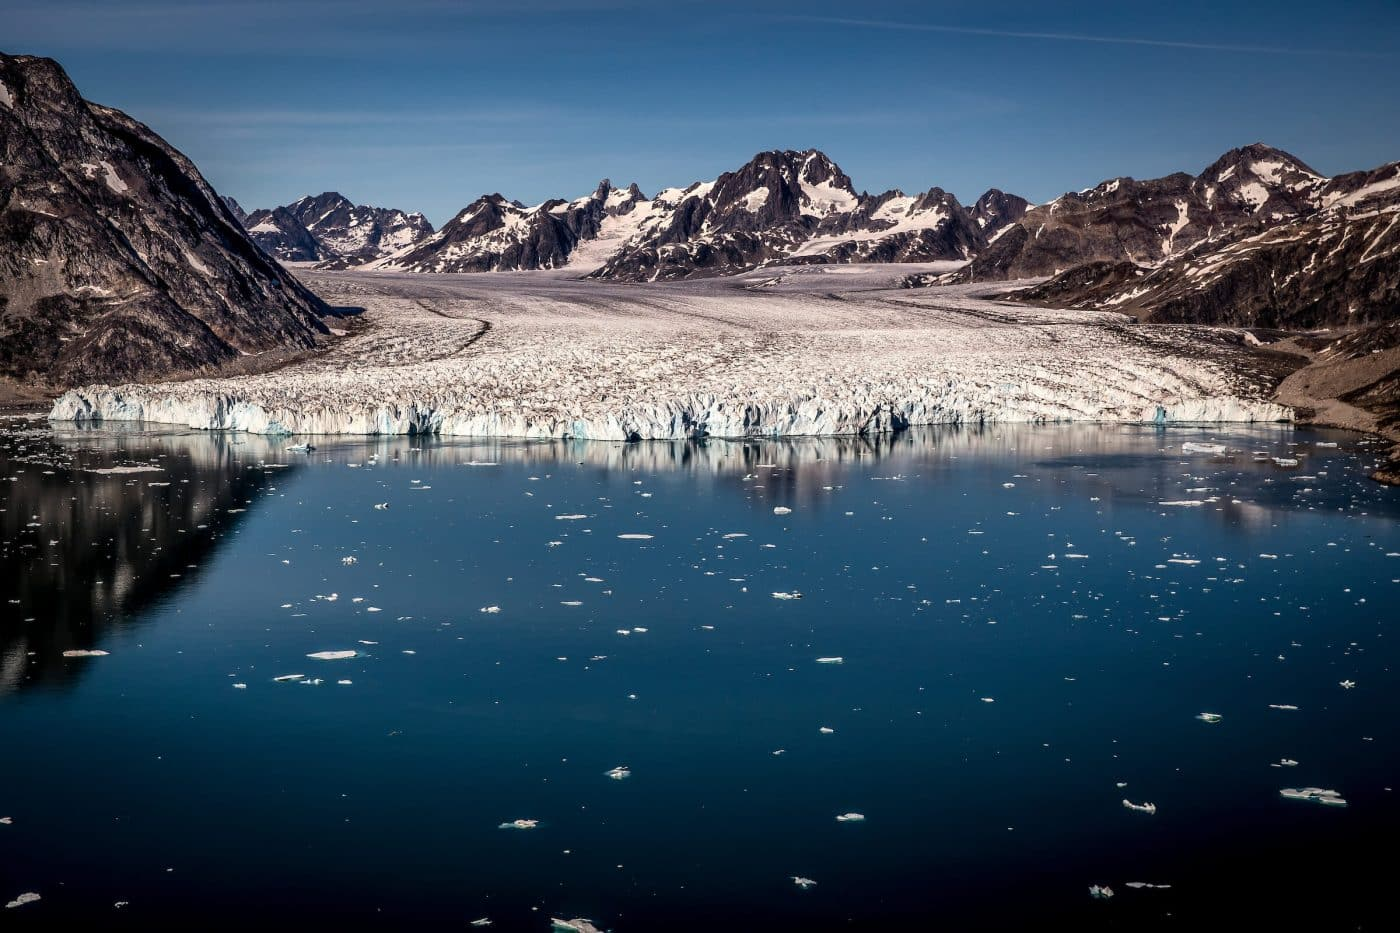 The front of the Knud Rasmussen glacier in East Greenland seen from an Air Zafari flight. By Mads Pihl